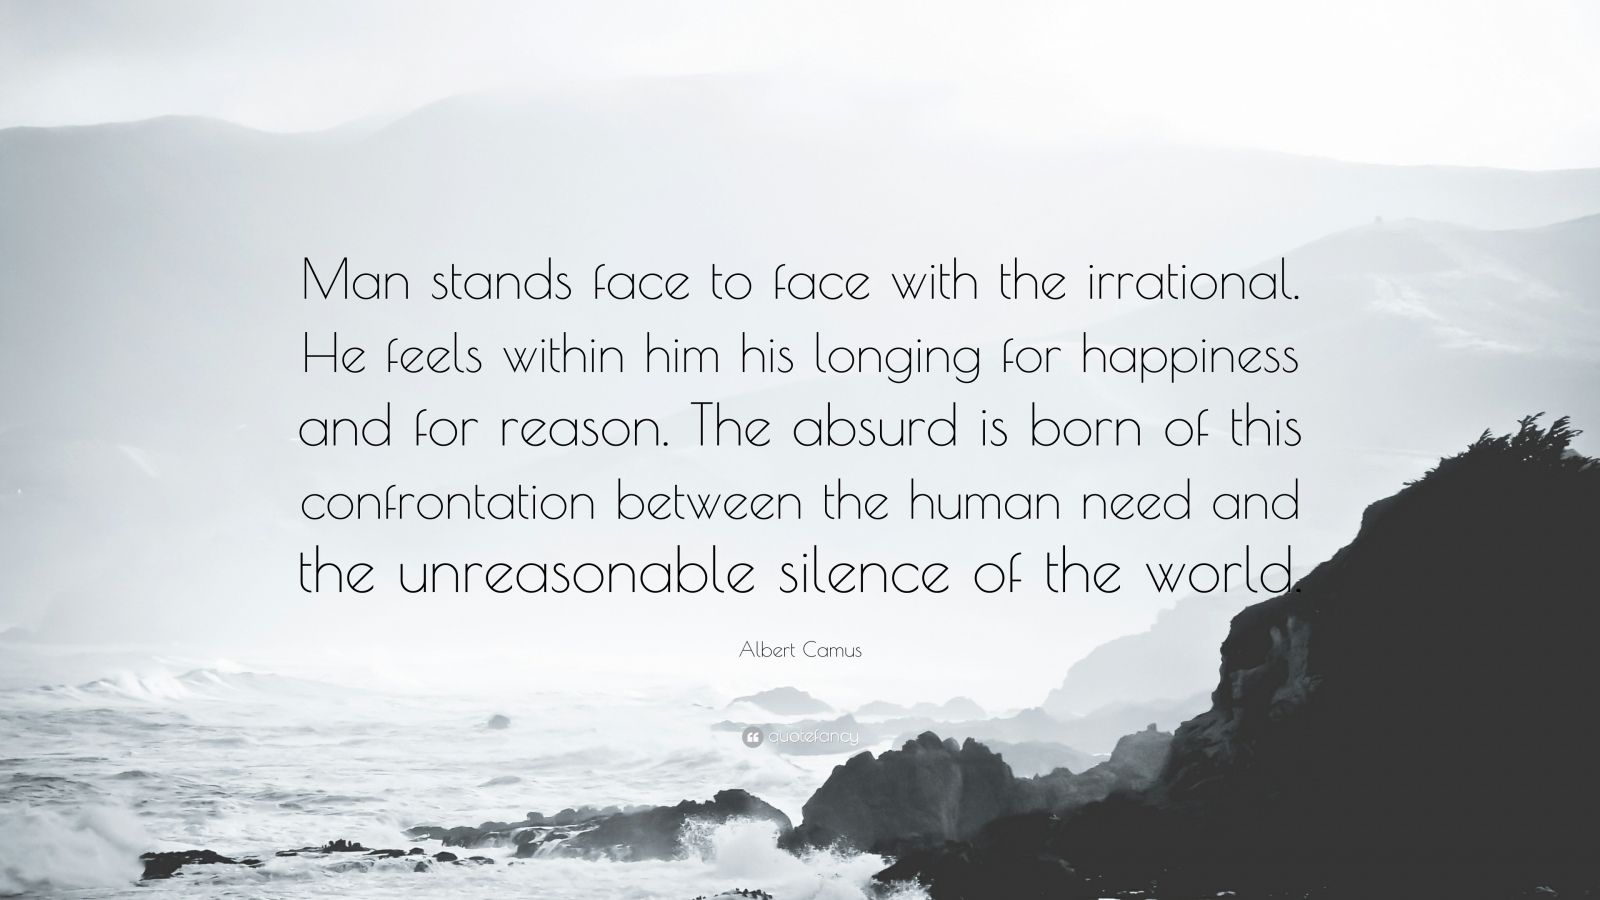 """Albert Camus Quote: """"Man stands face to face with the irrational. He feels within him his longing for happiness and for reason. The absurd is born of this confrontation between the human need and the unreasonable silence of the world."""""""